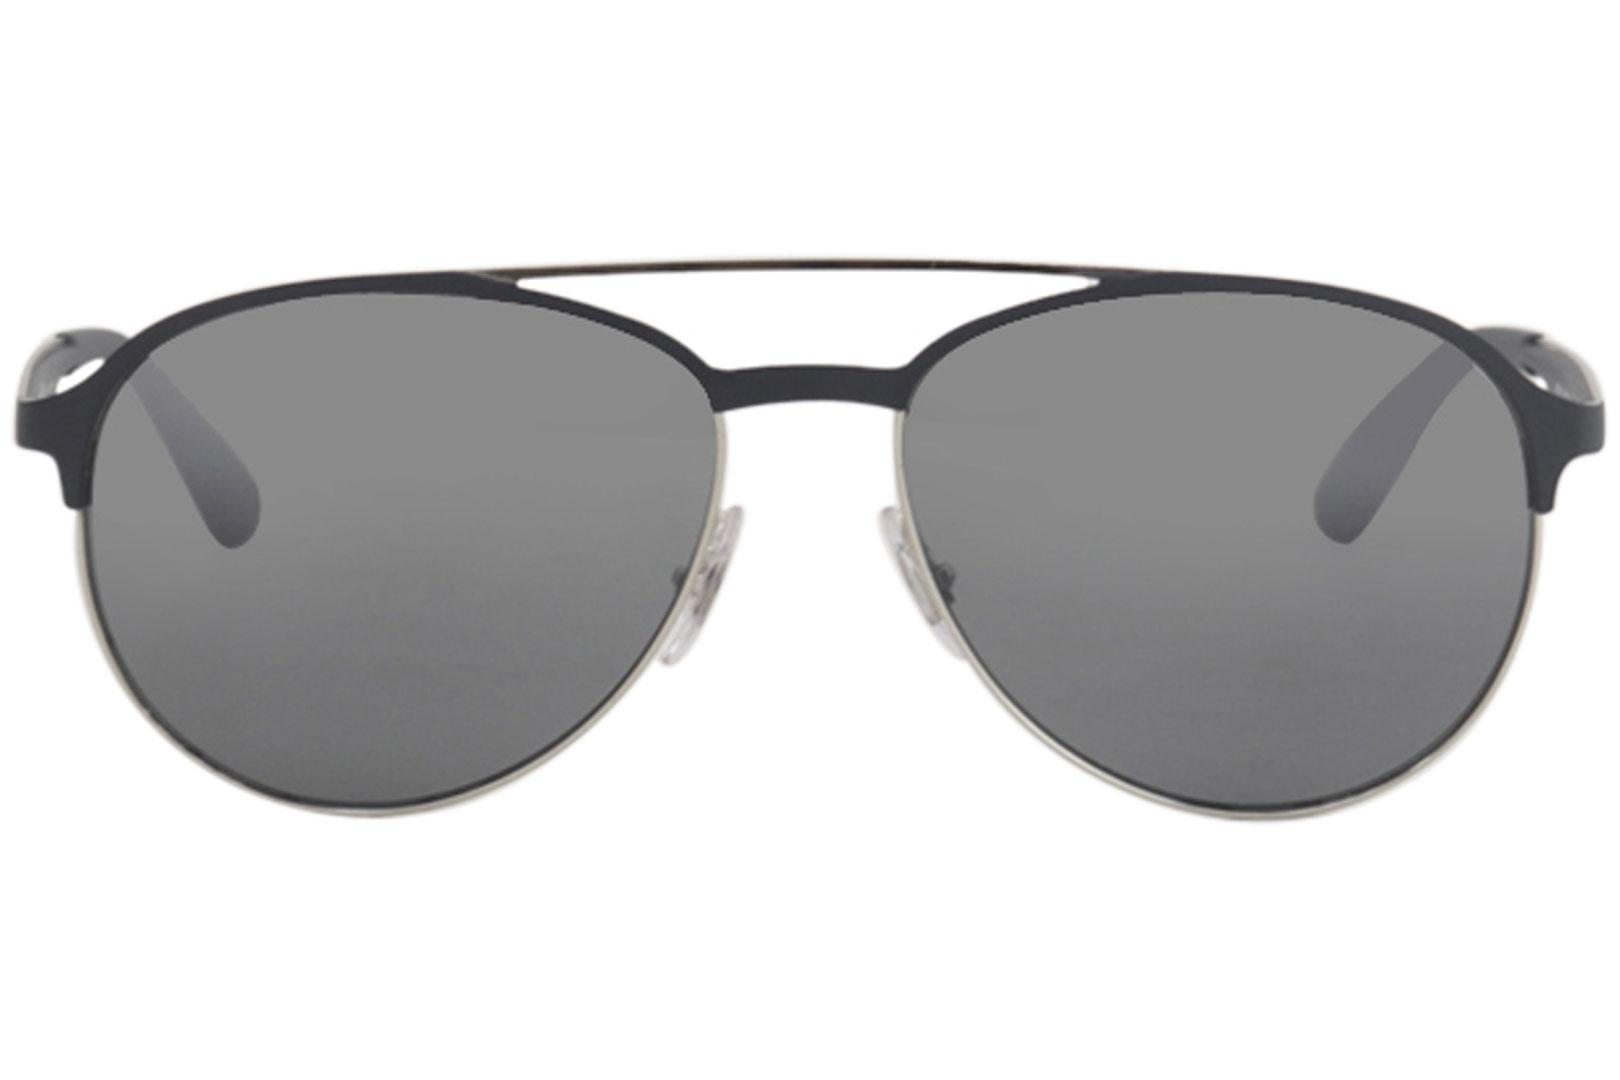 682238275b0 Ray Ban Men s RB3606 RB 3606 RayBan Fashion Pilot Sunglasses by Ray Ban